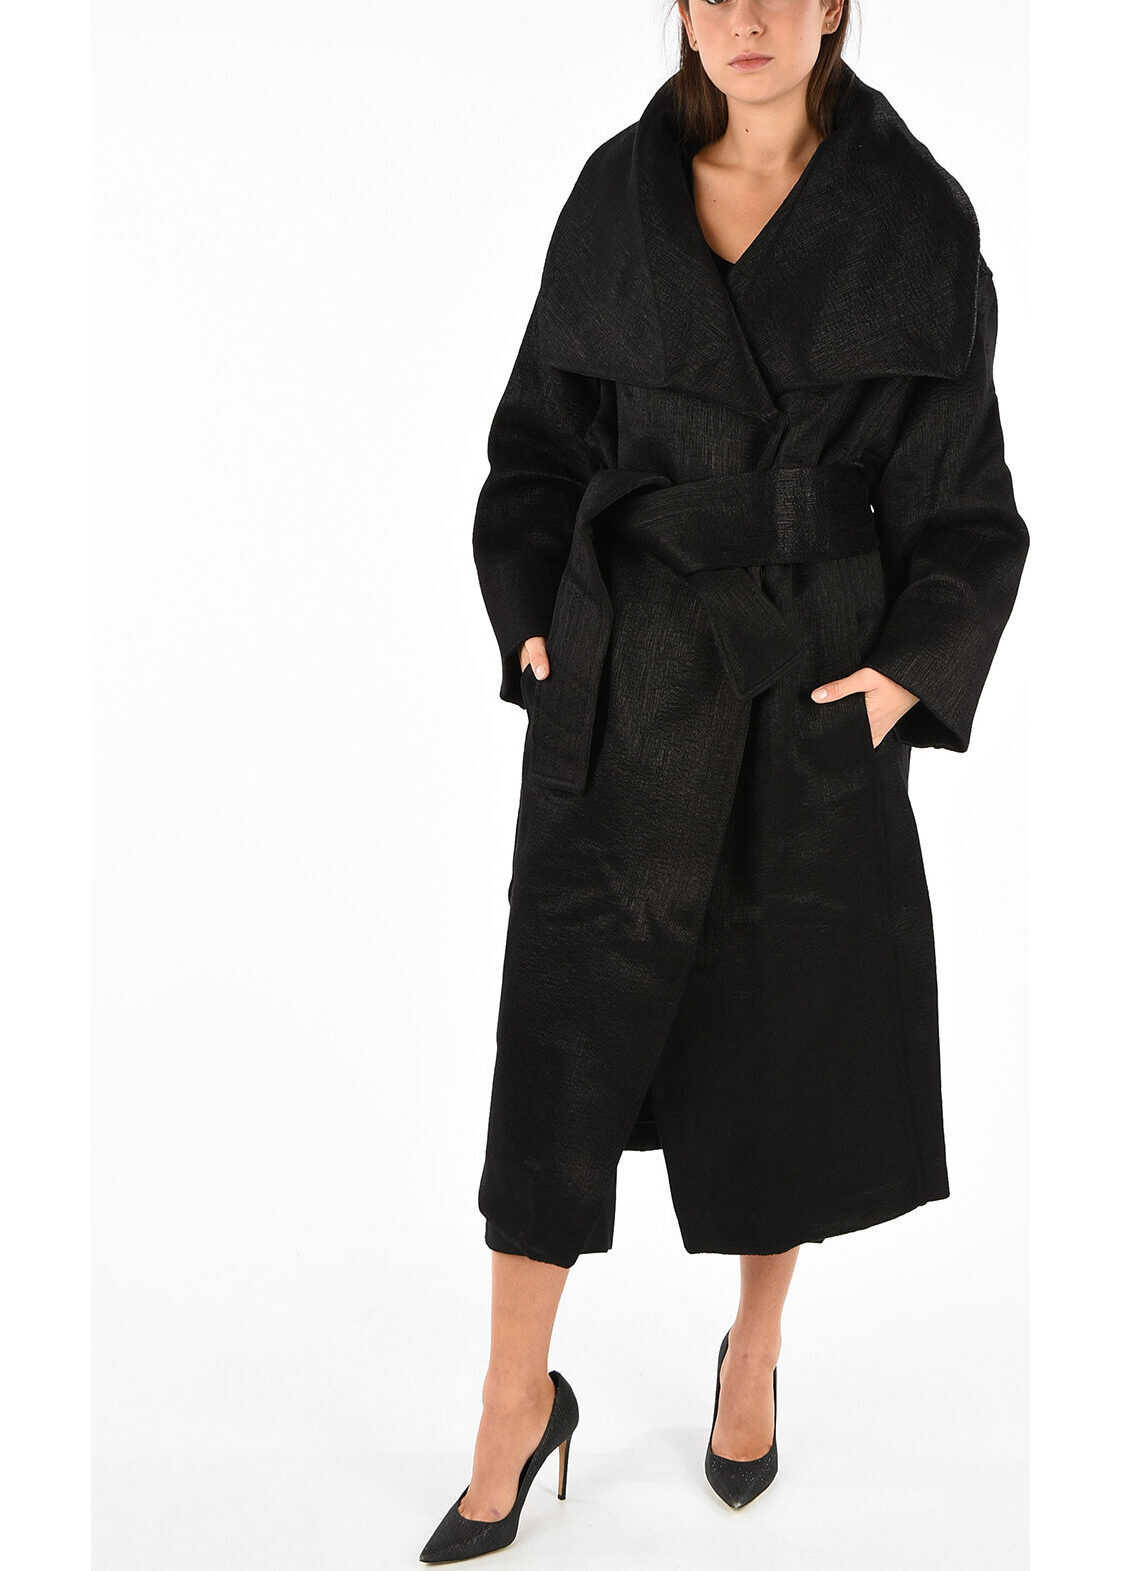 MM1 Wool Blend Double Breasted Coat